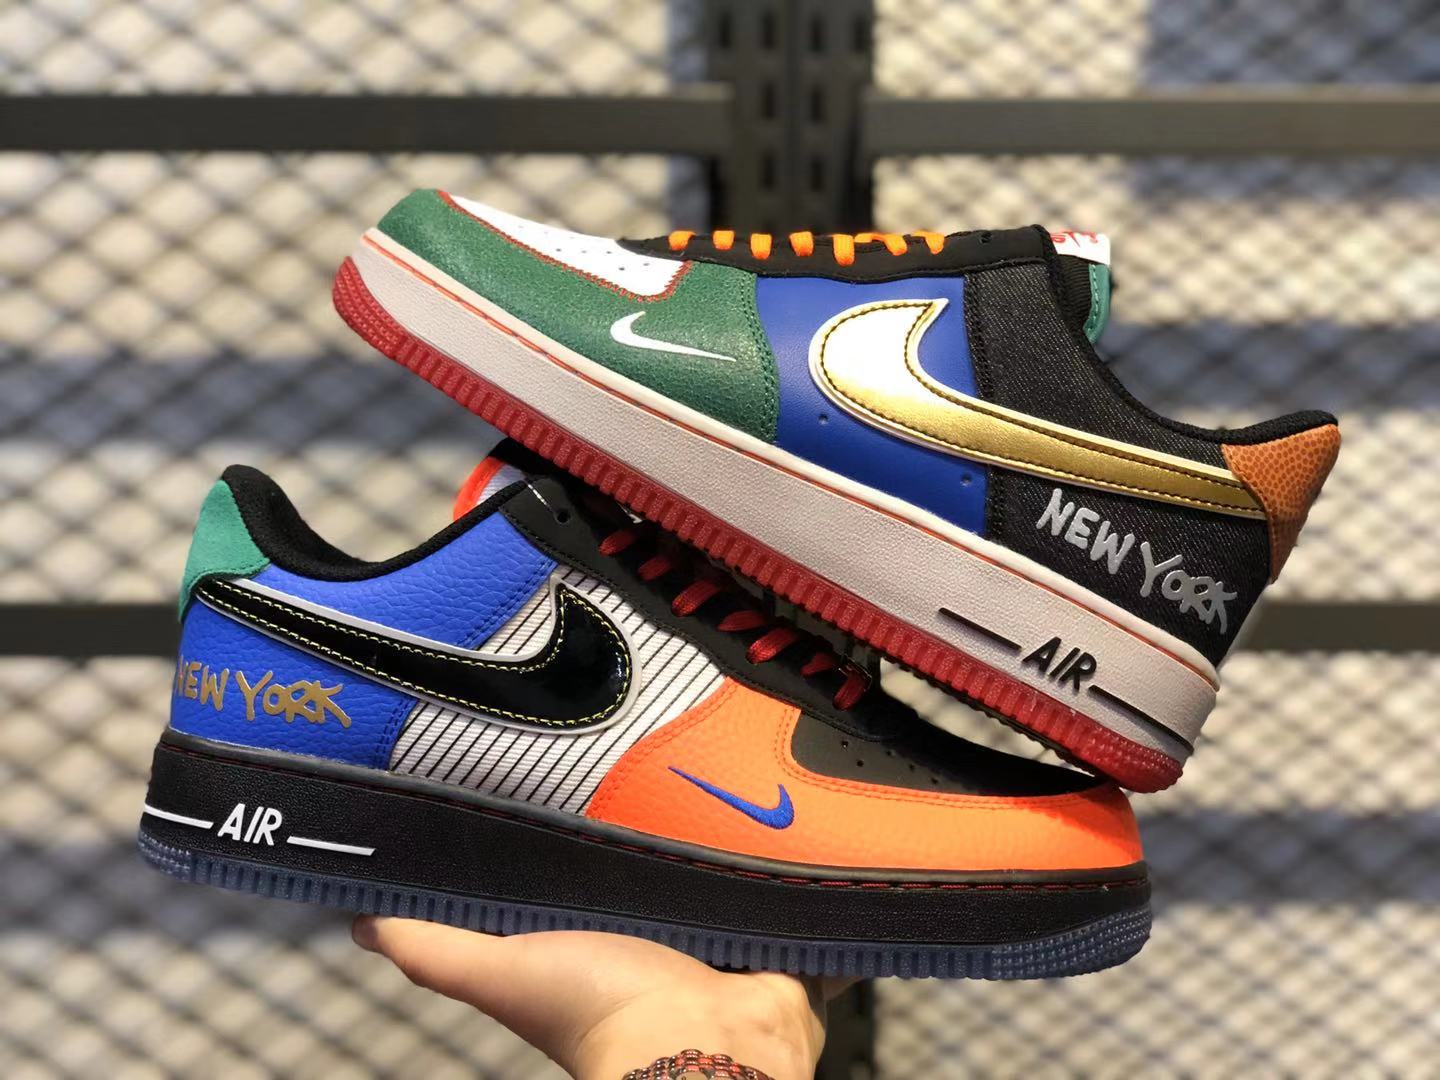 Nike Air Force 1'07 Low White/Black-Total Orange-Racer Blue For Sale CT3610-100